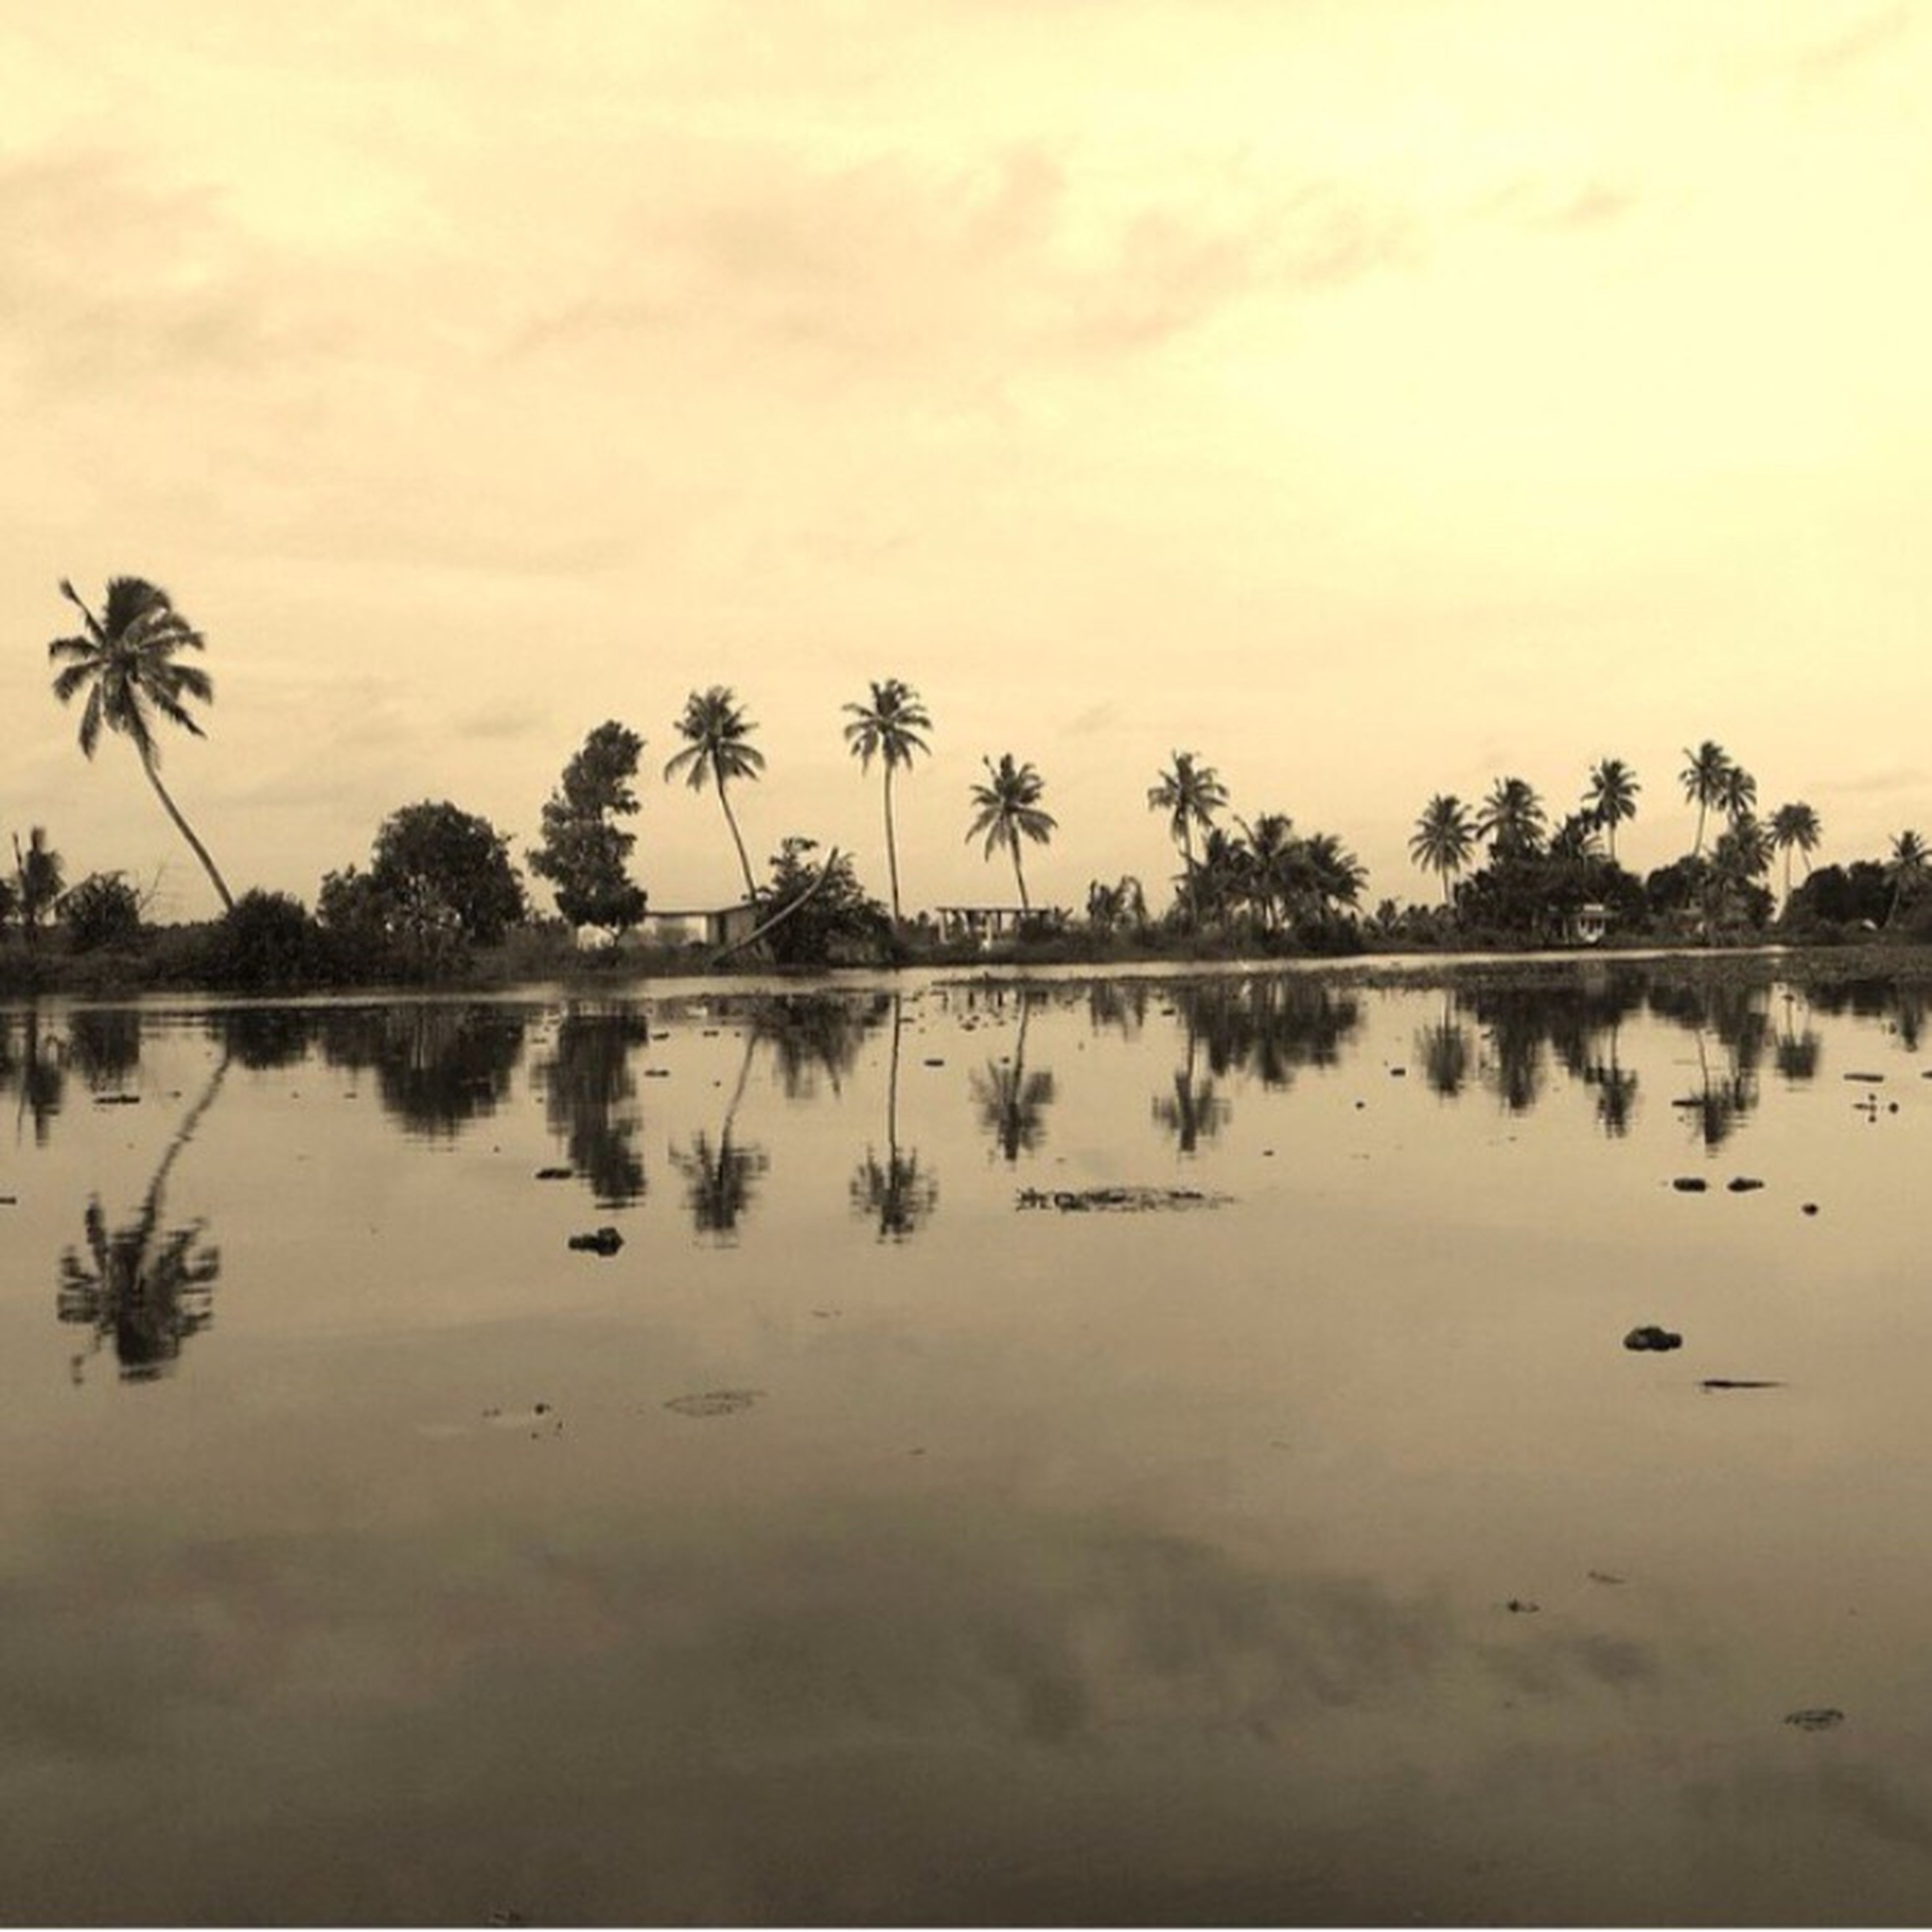 tranquil scene, tranquility, tree, sunset, scenics, sky, beauty in nature, water, reflection, nature, palm tree, silhouette, idyllic, lake, cloud - sky, waterfront, growth, dusk, outdoors, non-urban scene